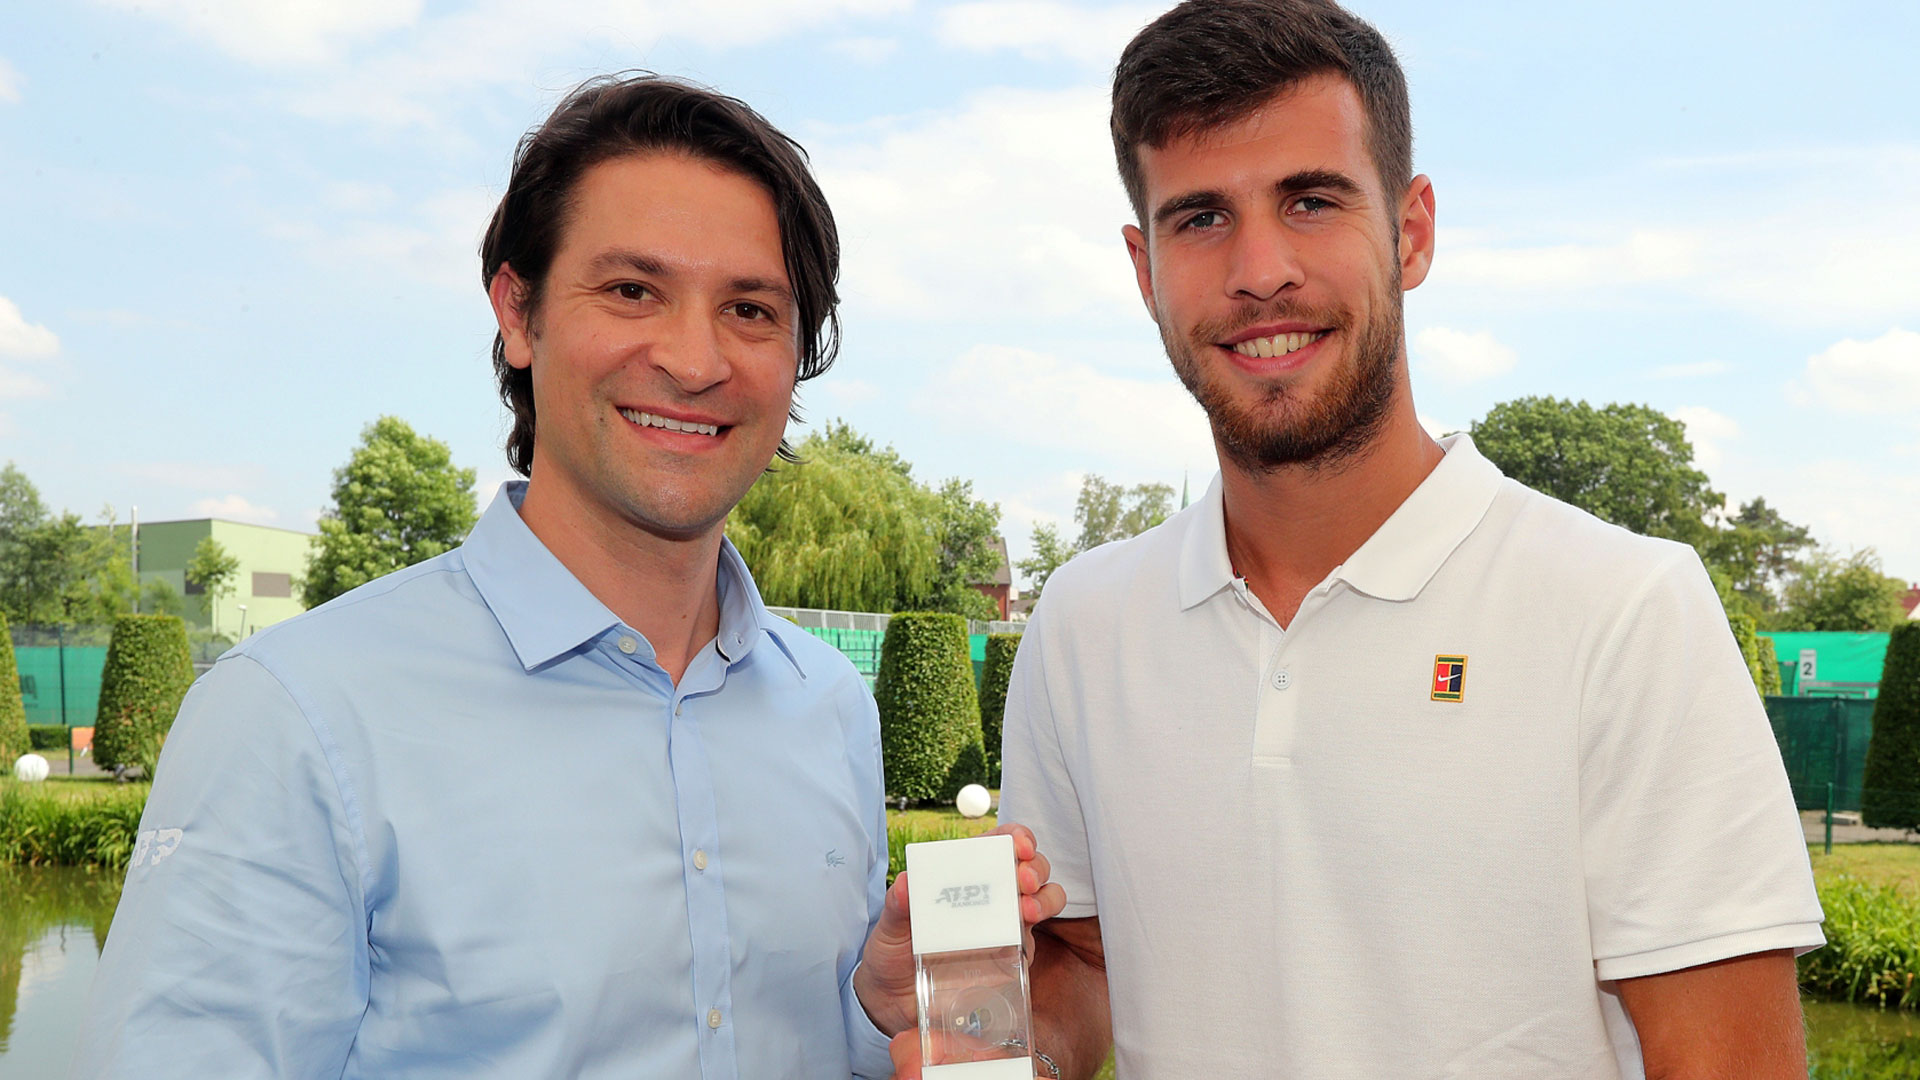 Karen Khachanov receives his Top 10 award in Halle